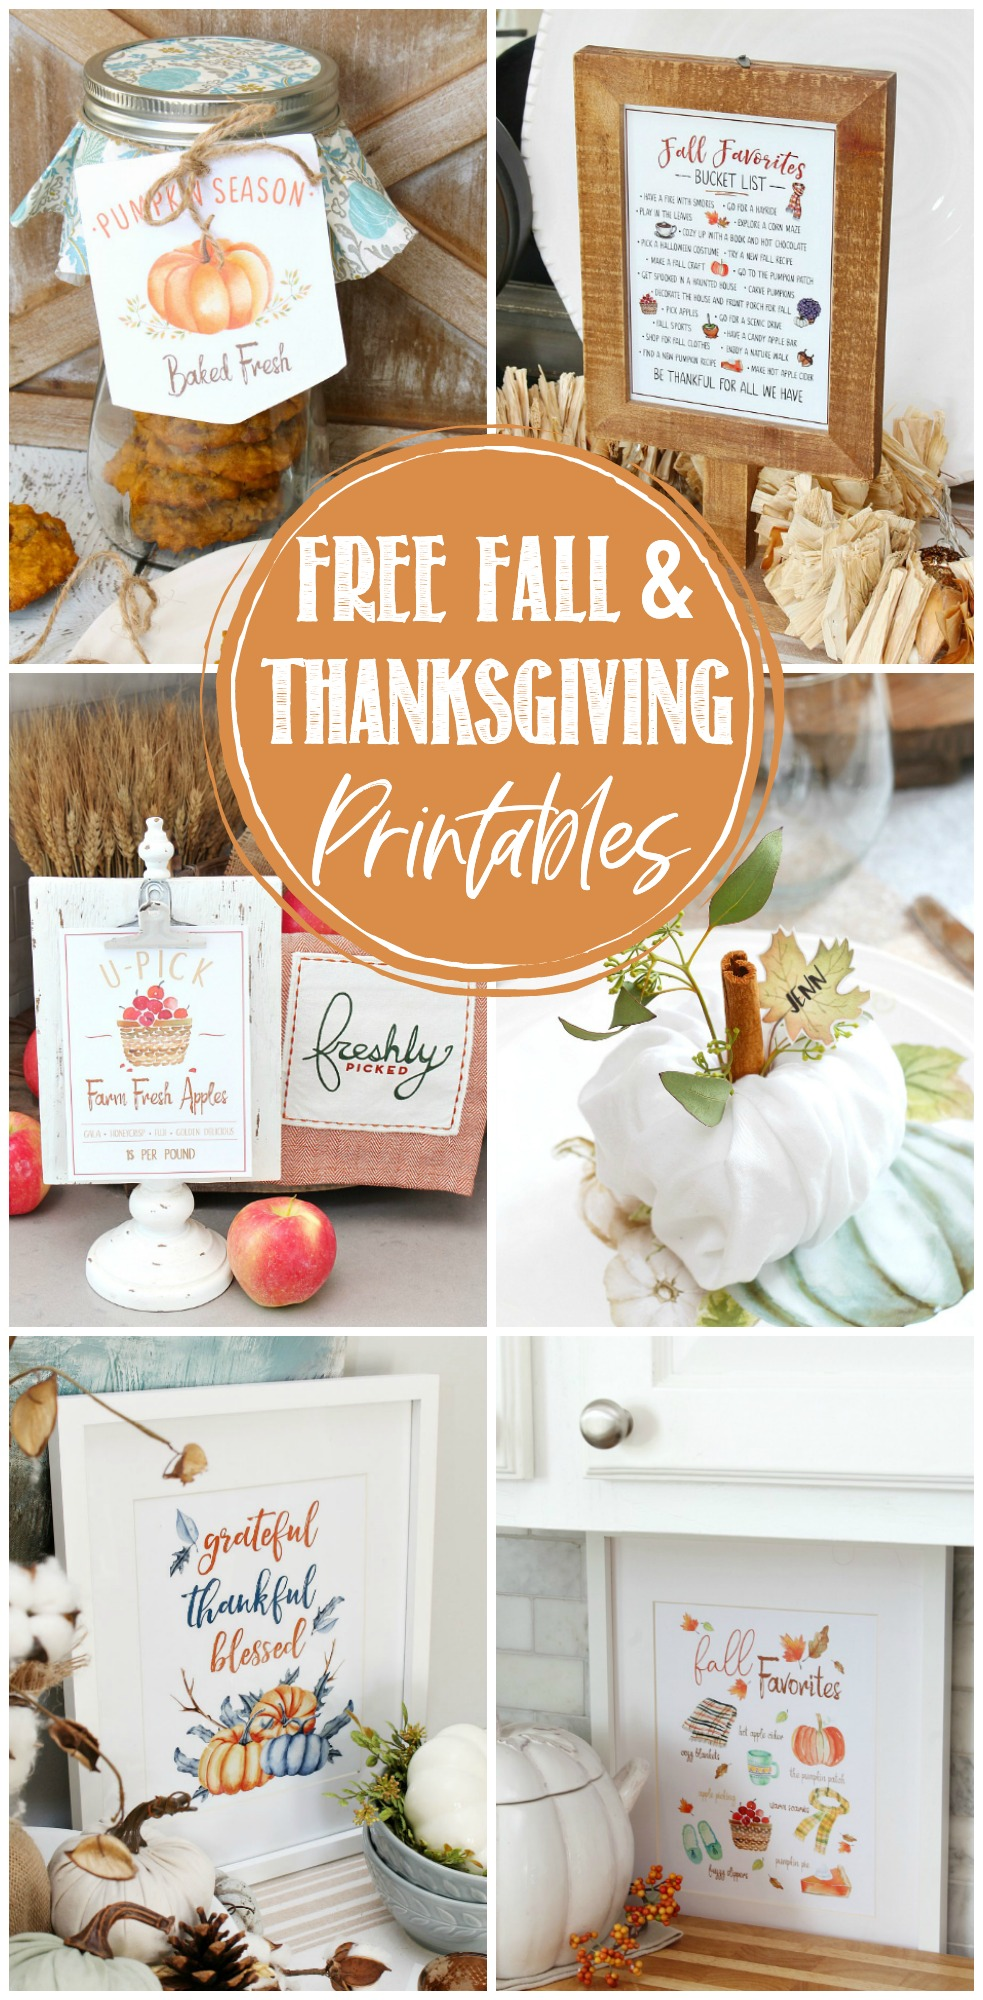 Beautiful collection of free fall printables for fall and Thanksgiving.